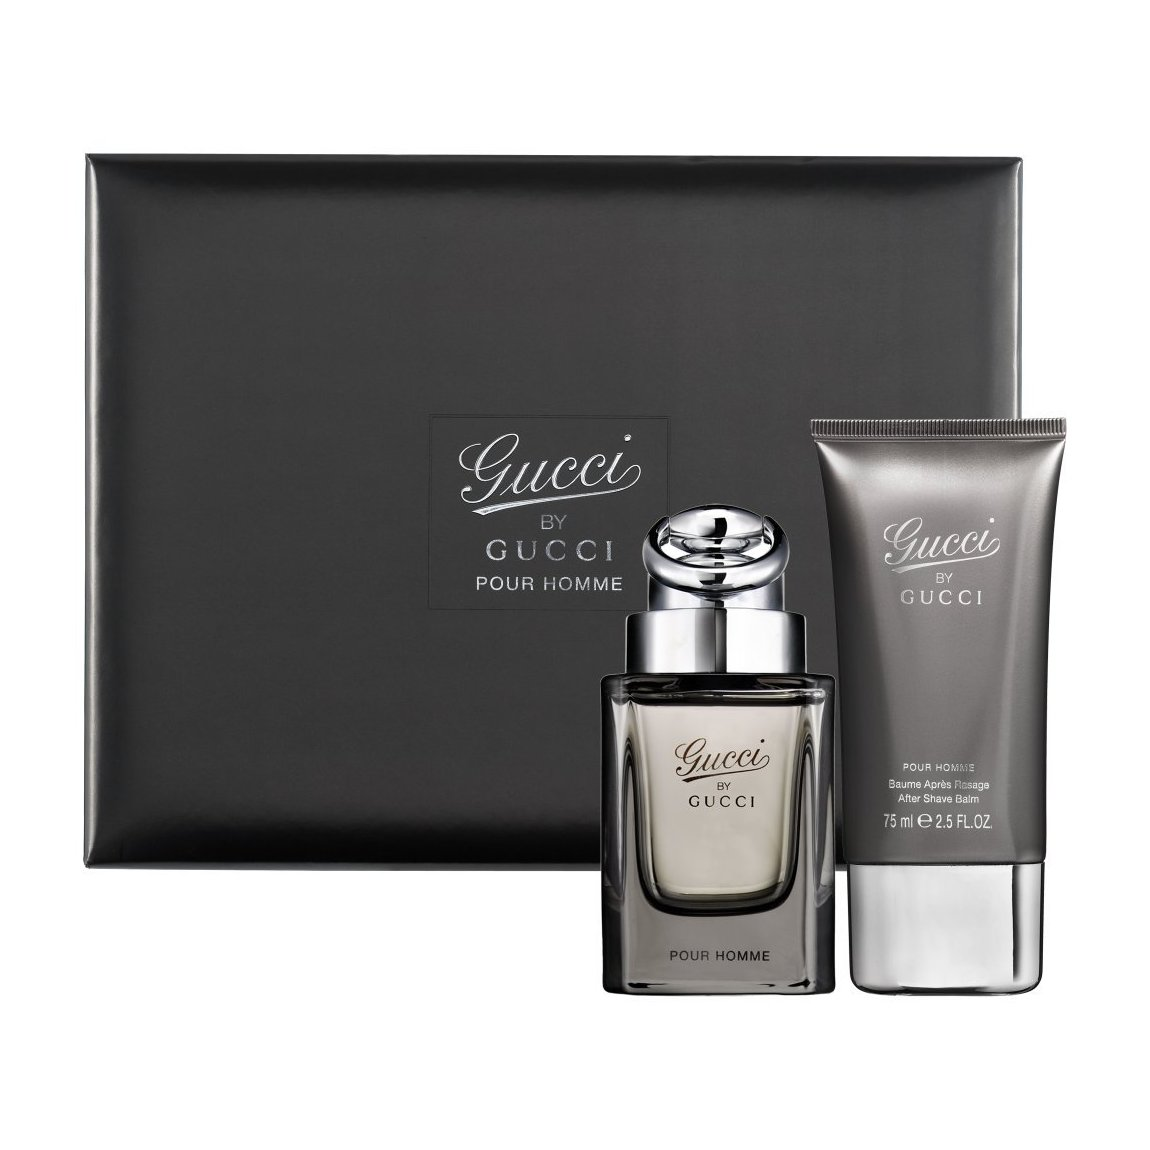 3048a1effd73 Gucci Gucci By Gucci Pour Homme Gift Set   Beautylish